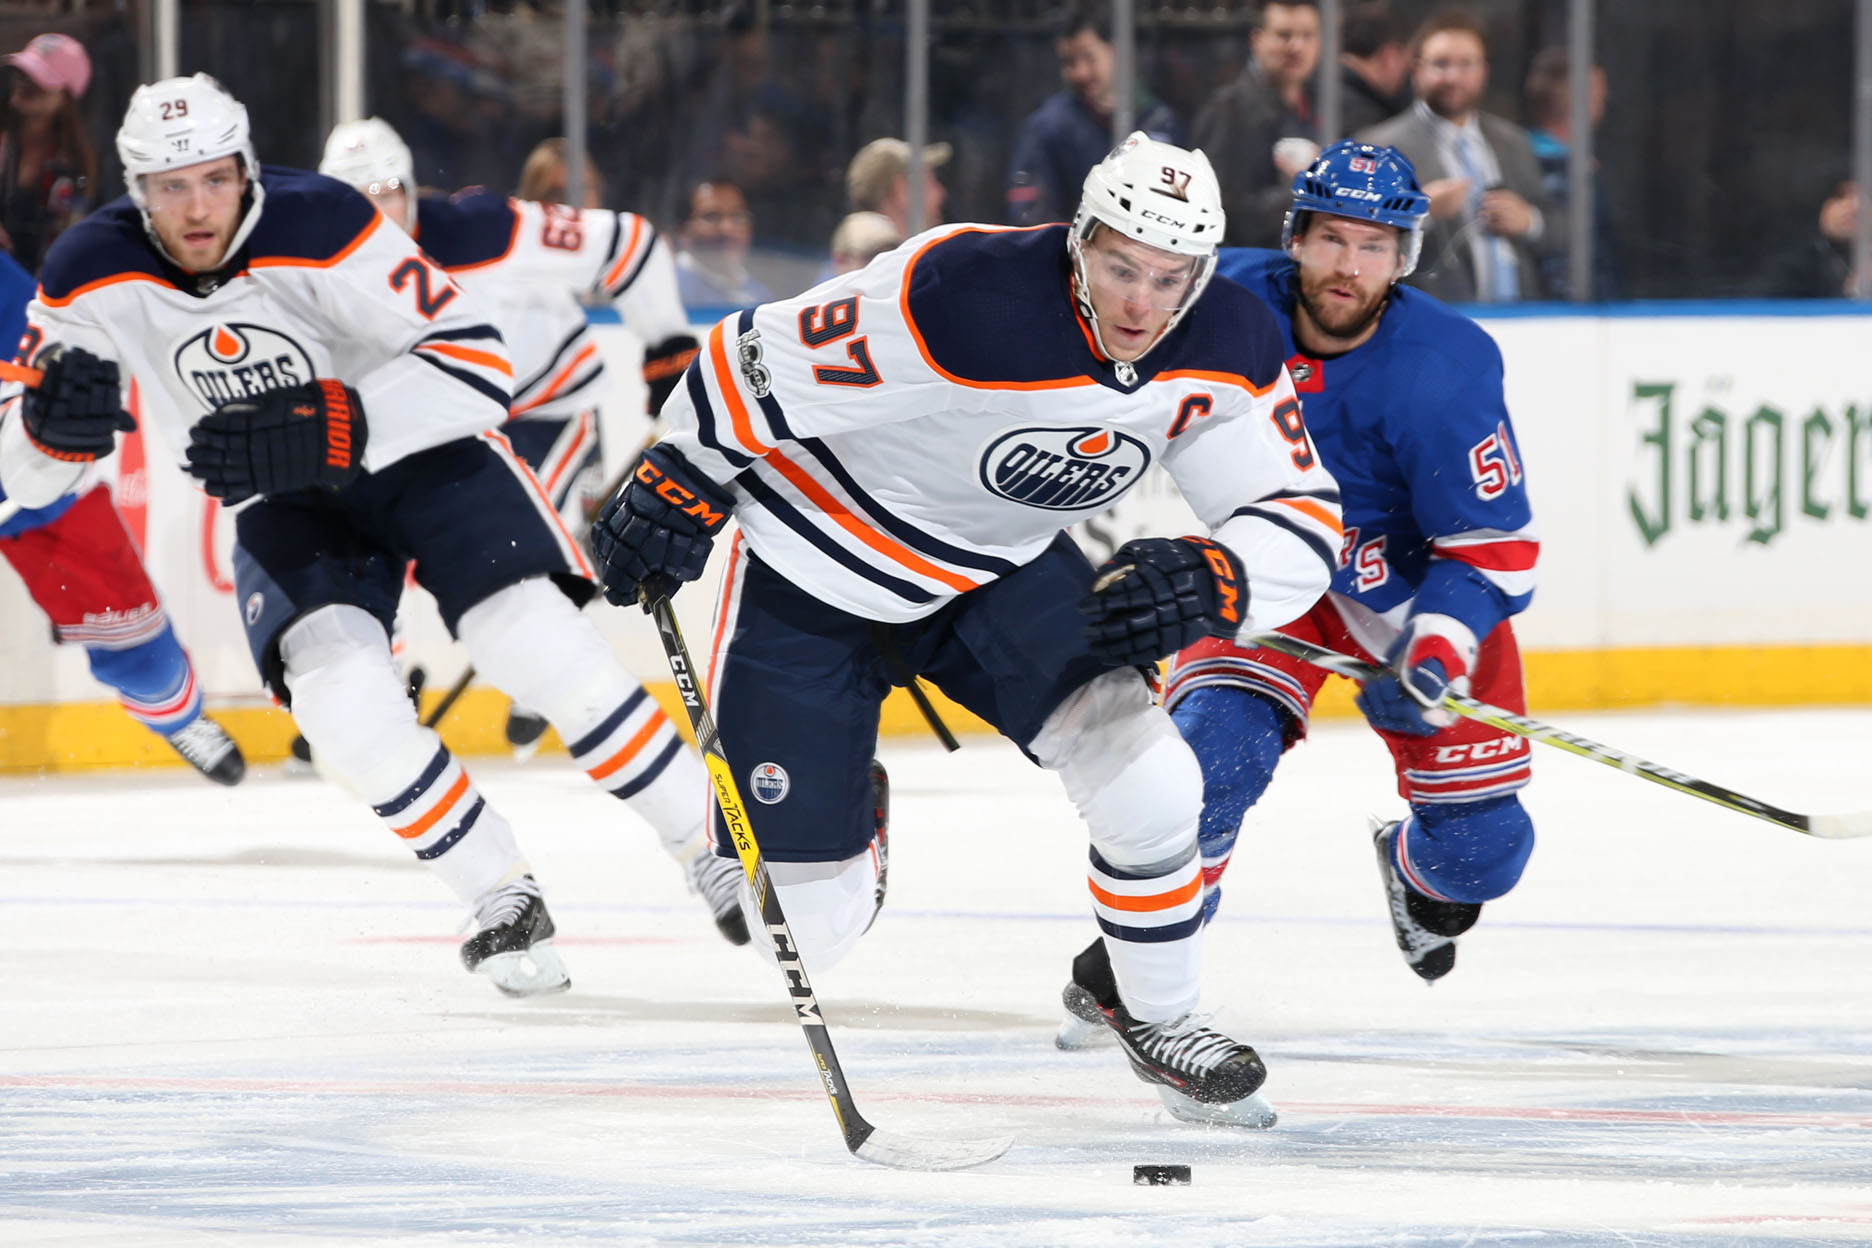 Oilers can't make up for slow start in loss to Rangers